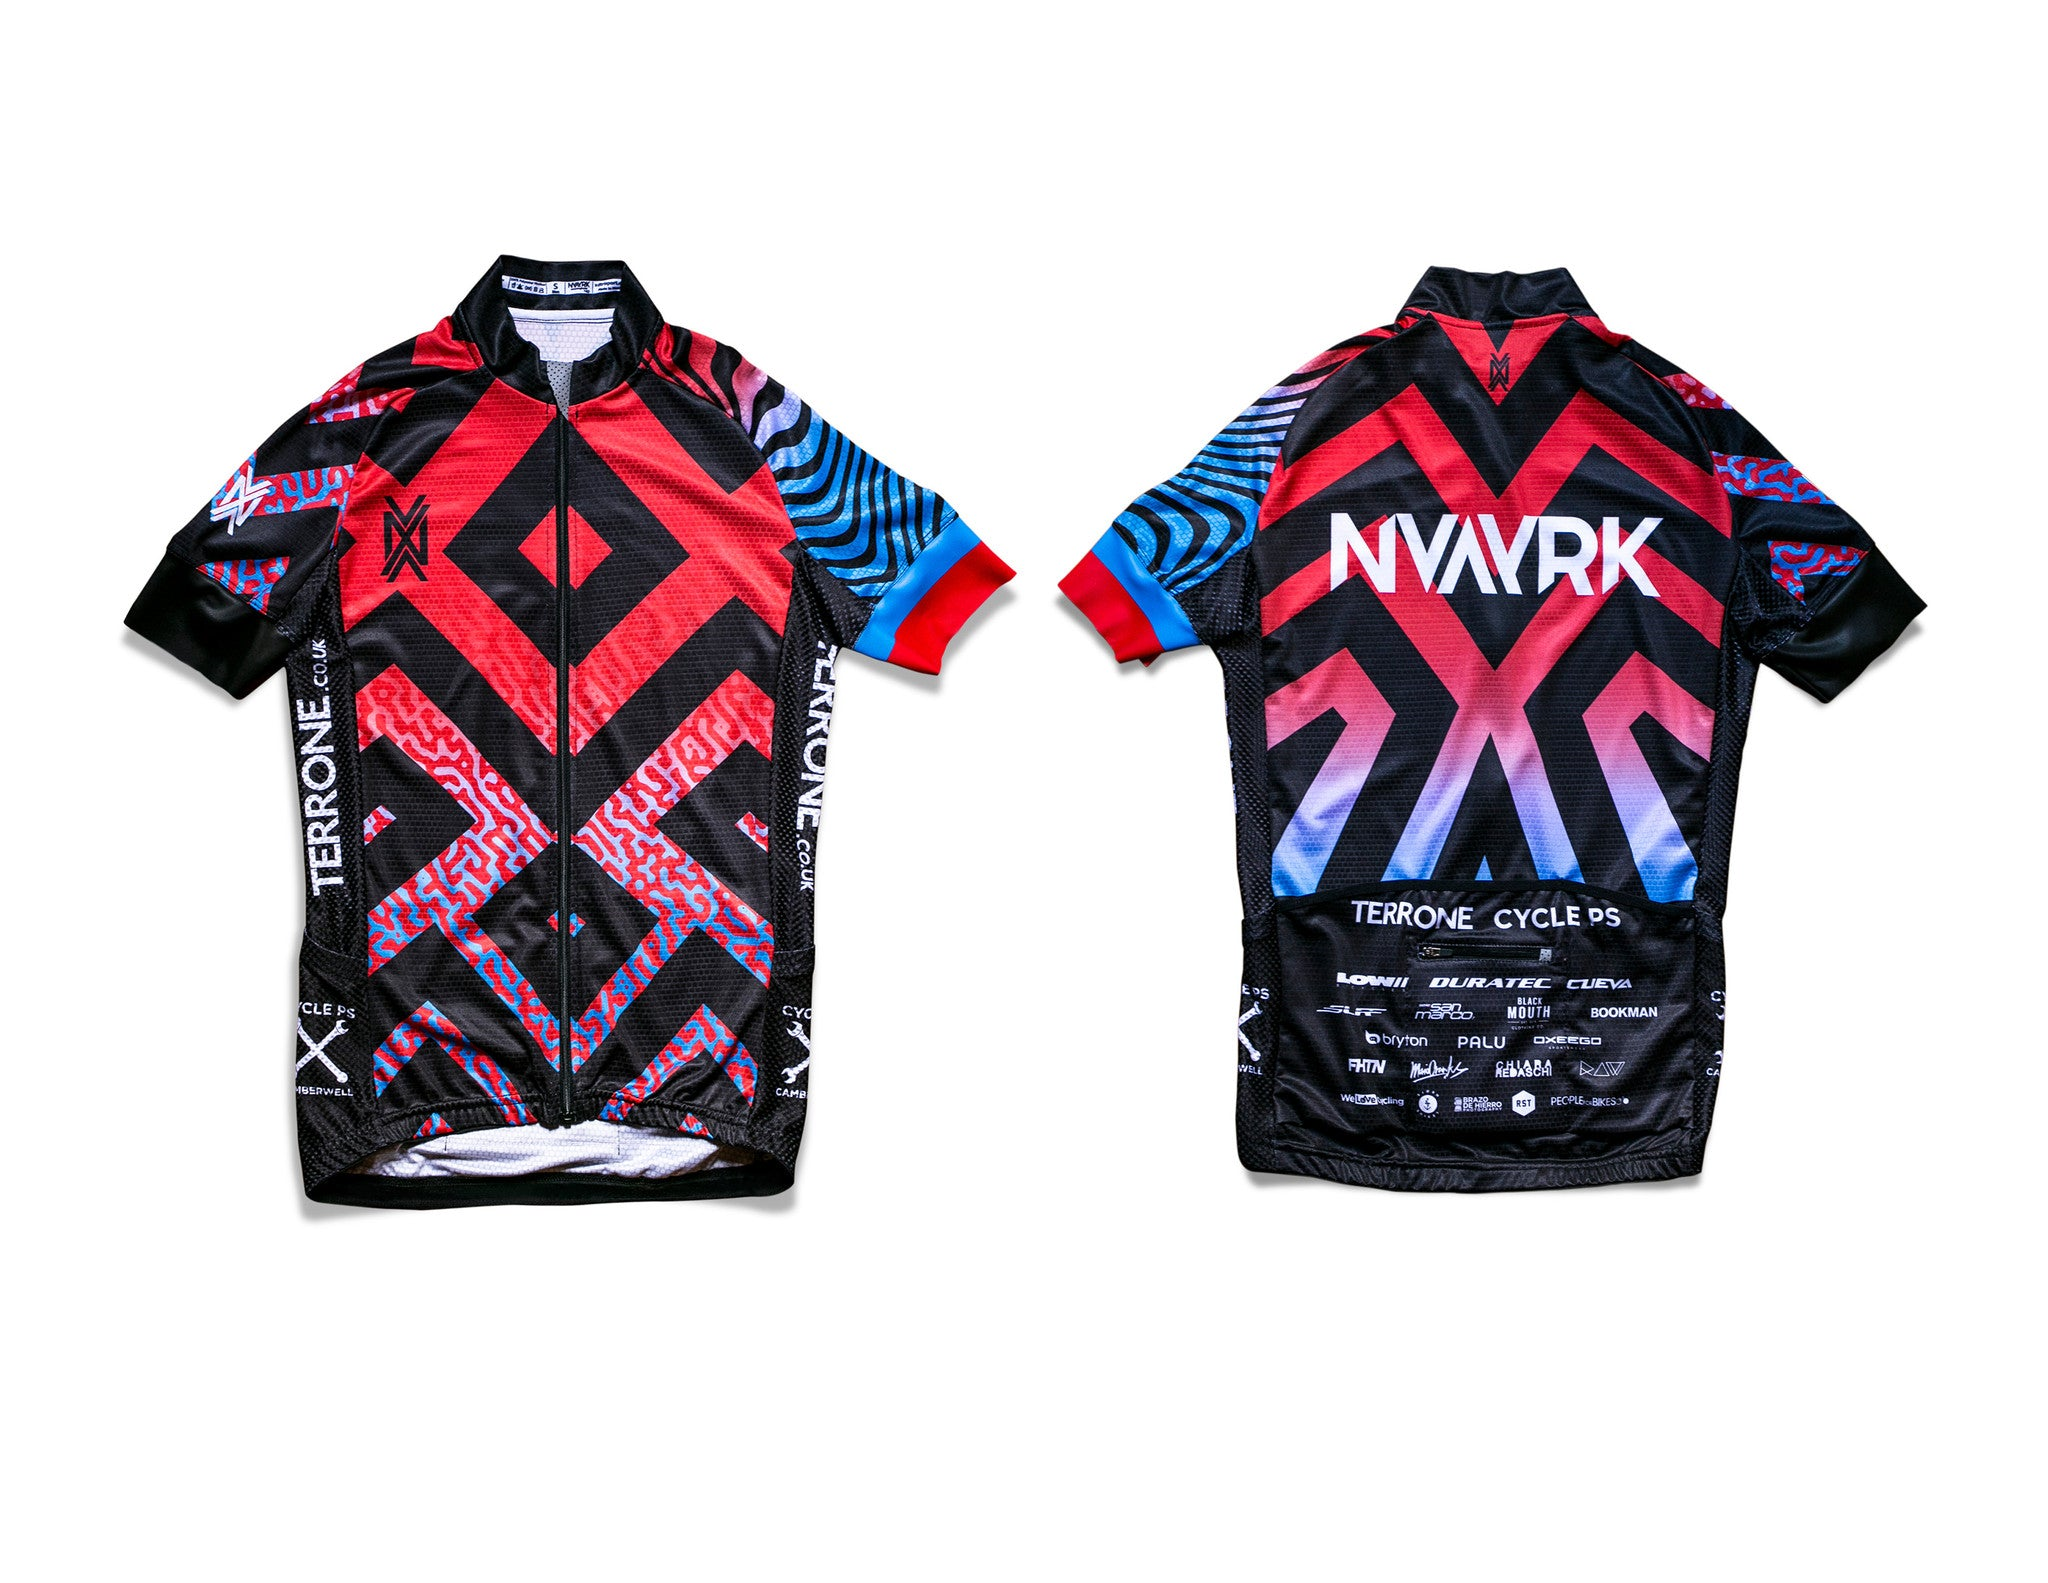 NVAYRK X Copete Cohete Cycling Kit